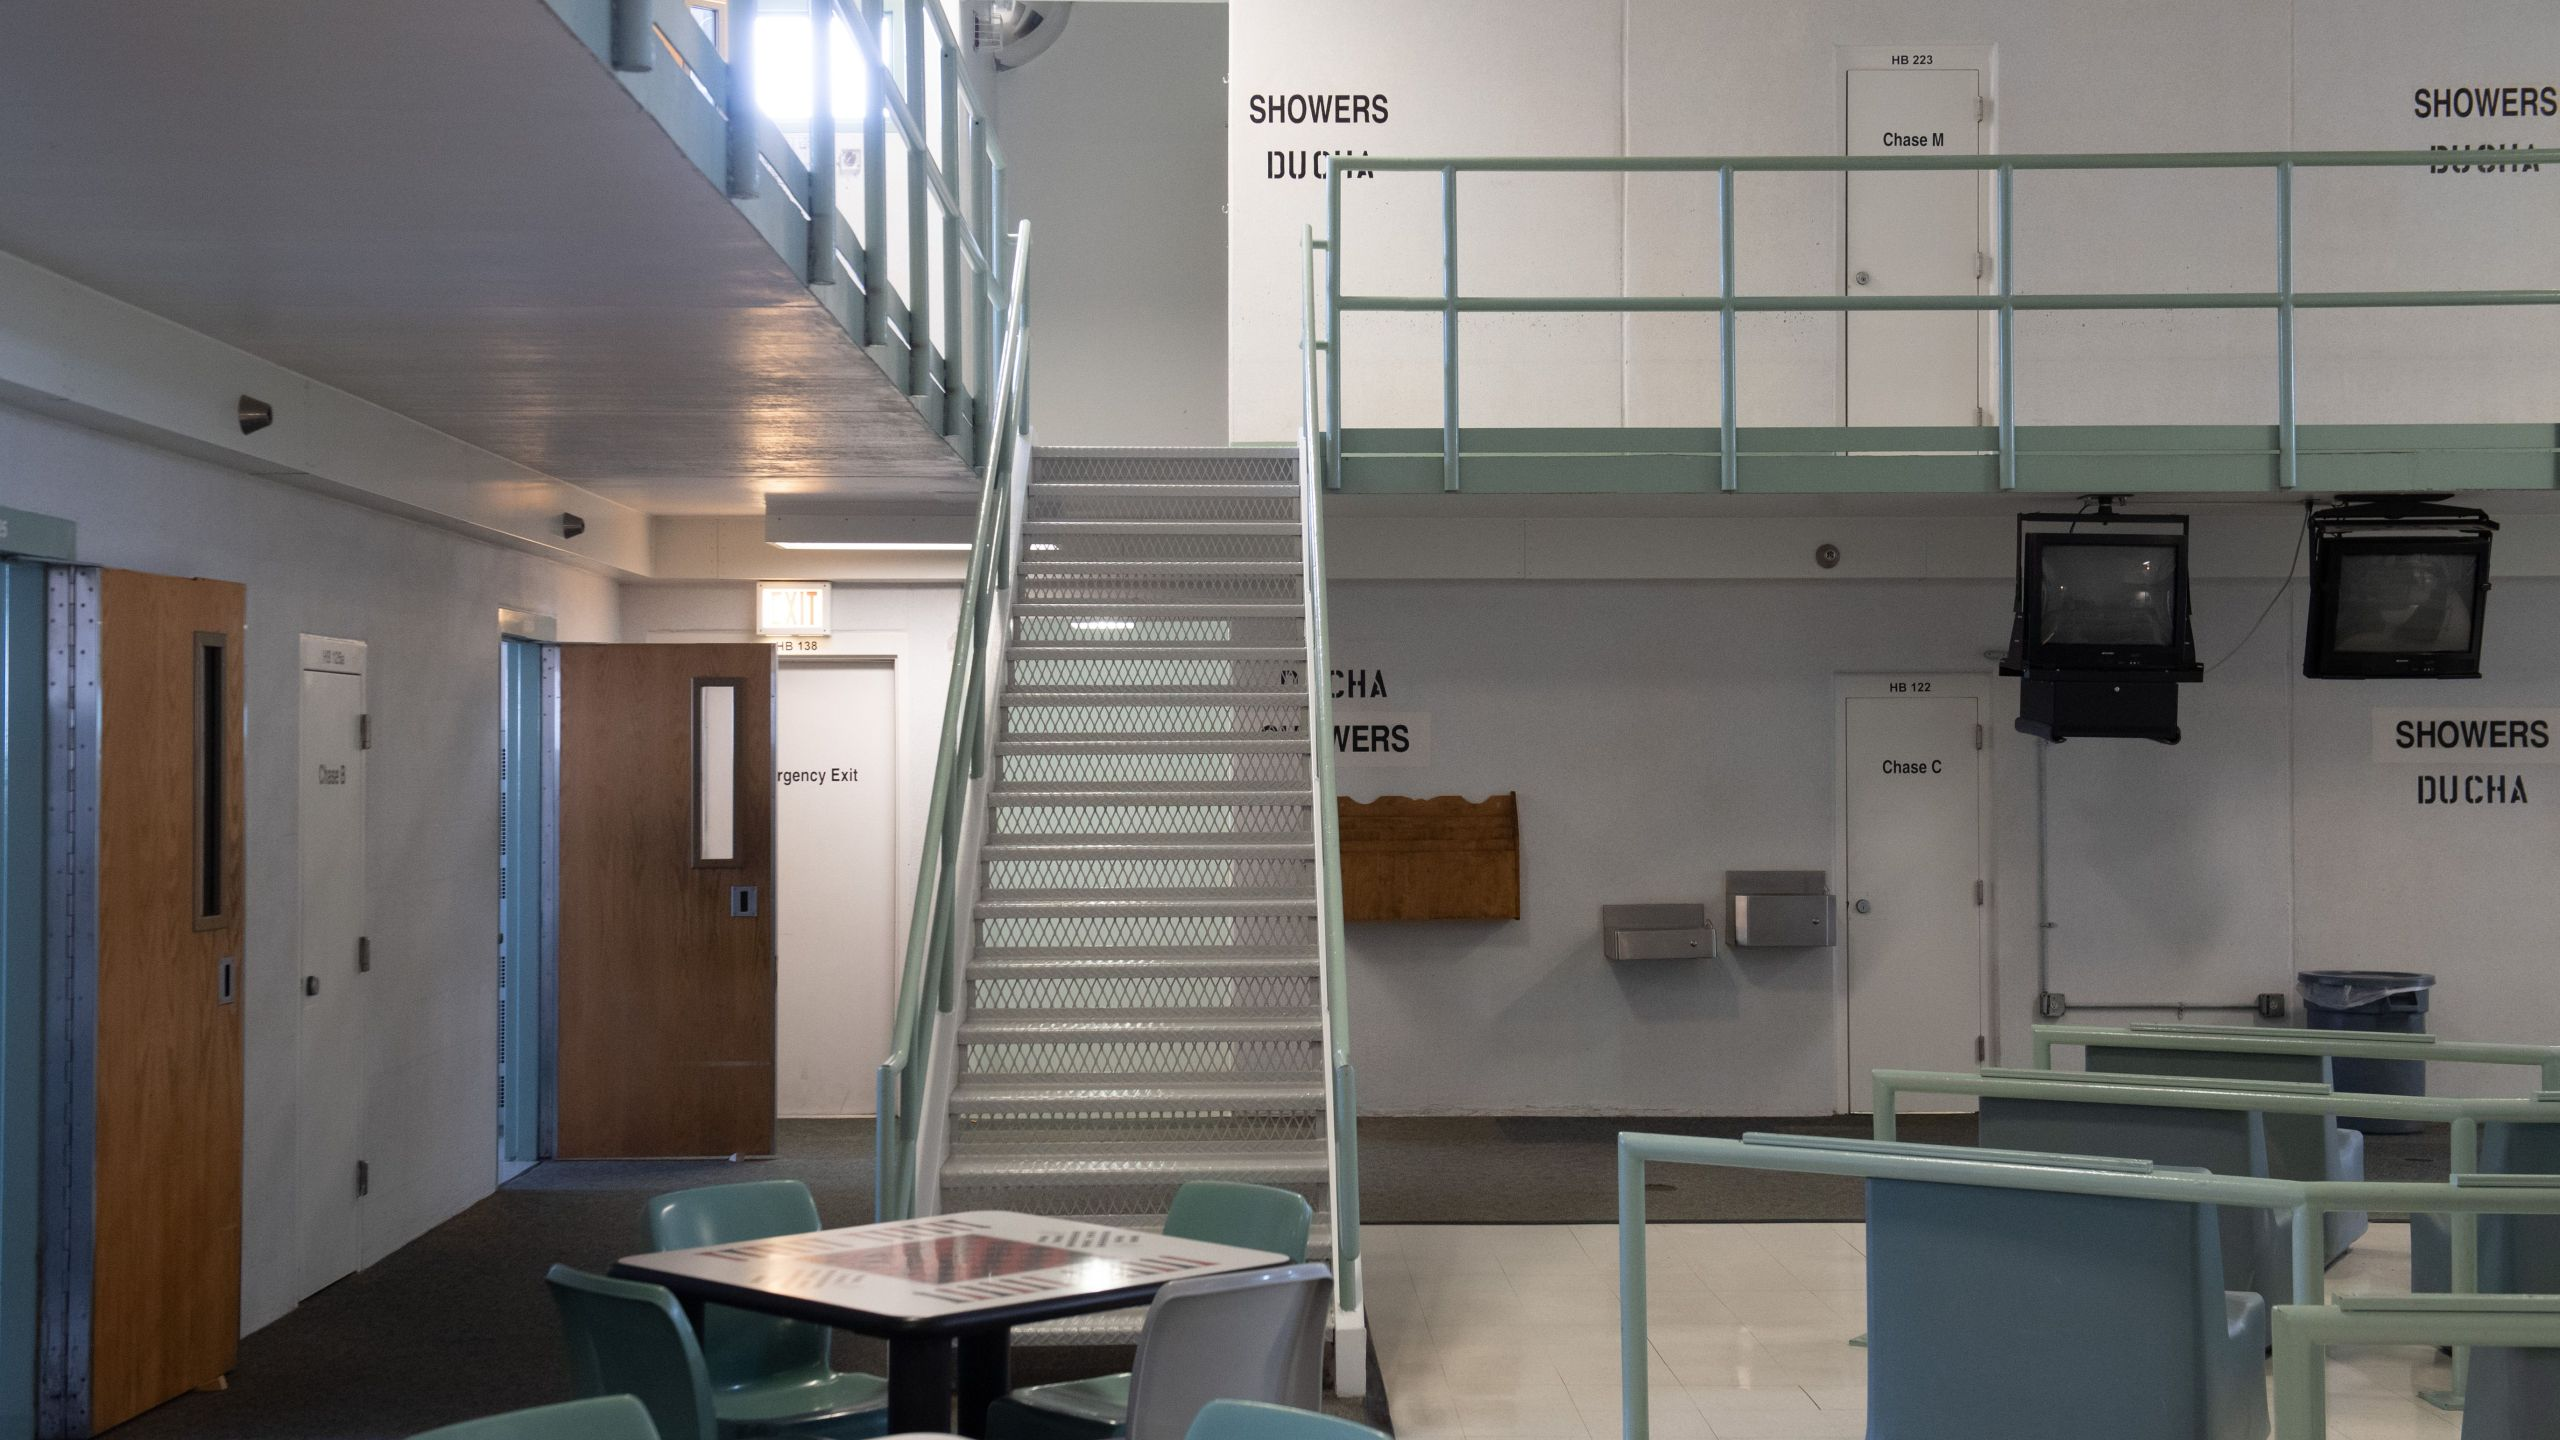 A common area and cell room doors are seen on Aug. 13, 2018, inside the Caroline Detention Facility in Bowling Green, Virginia, a former regional jail contracted by U.S. Immigration and Customs Enforcement. (Credit: Saul Loeb / AFP / Getty Images)